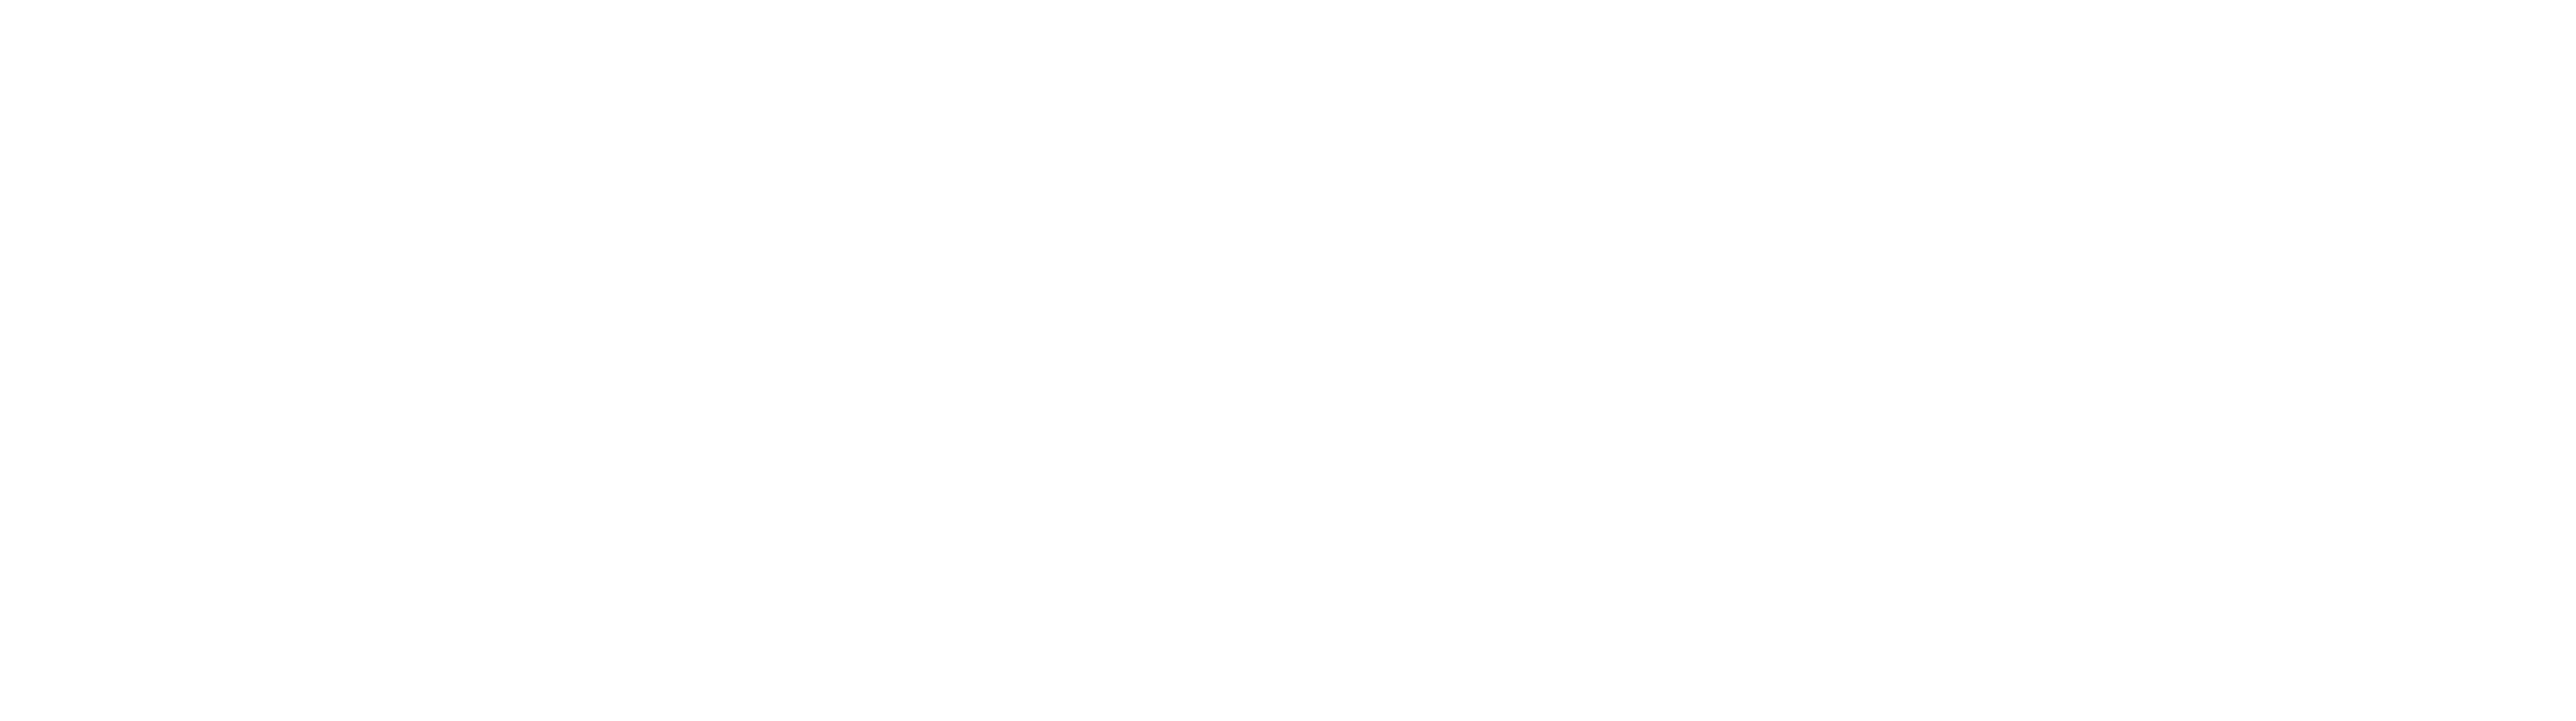 Jerome Florist - Flower Delivery in Bronx, NY